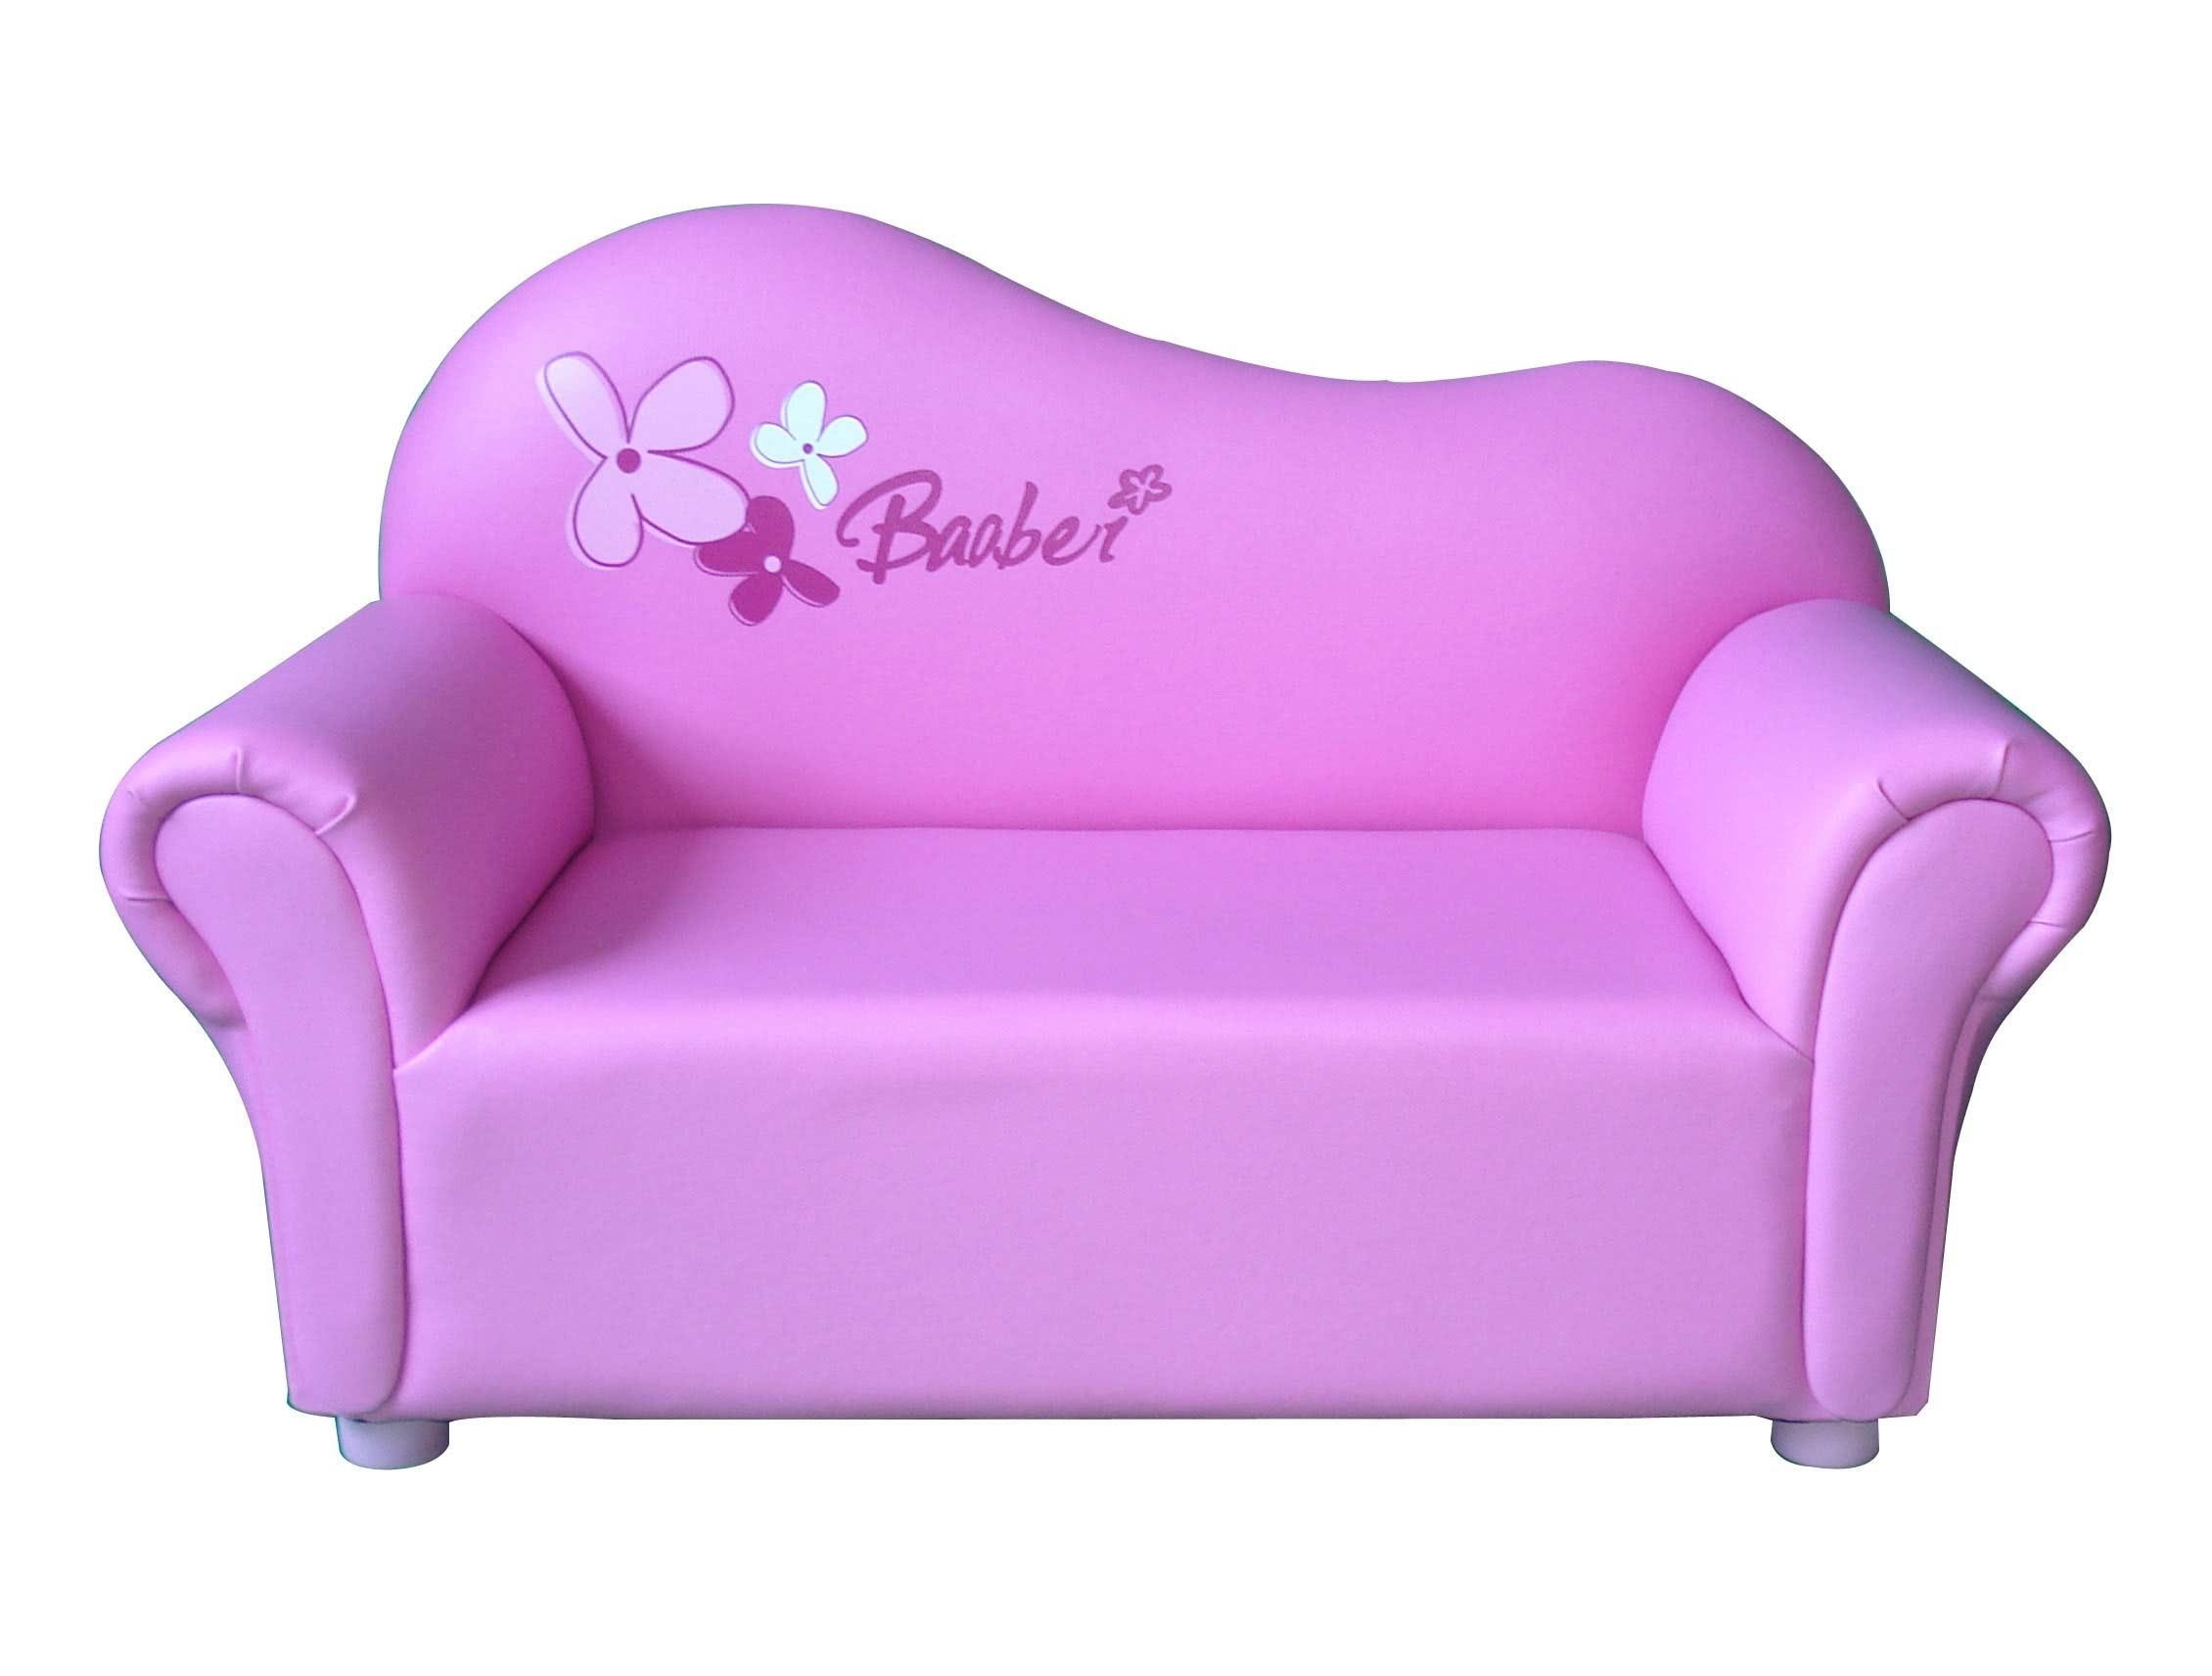 Sofas Center : 31 Fascinating Toddler Sofa Chair Image Inside Toddler Sofa Chairs (View 4 of 20)